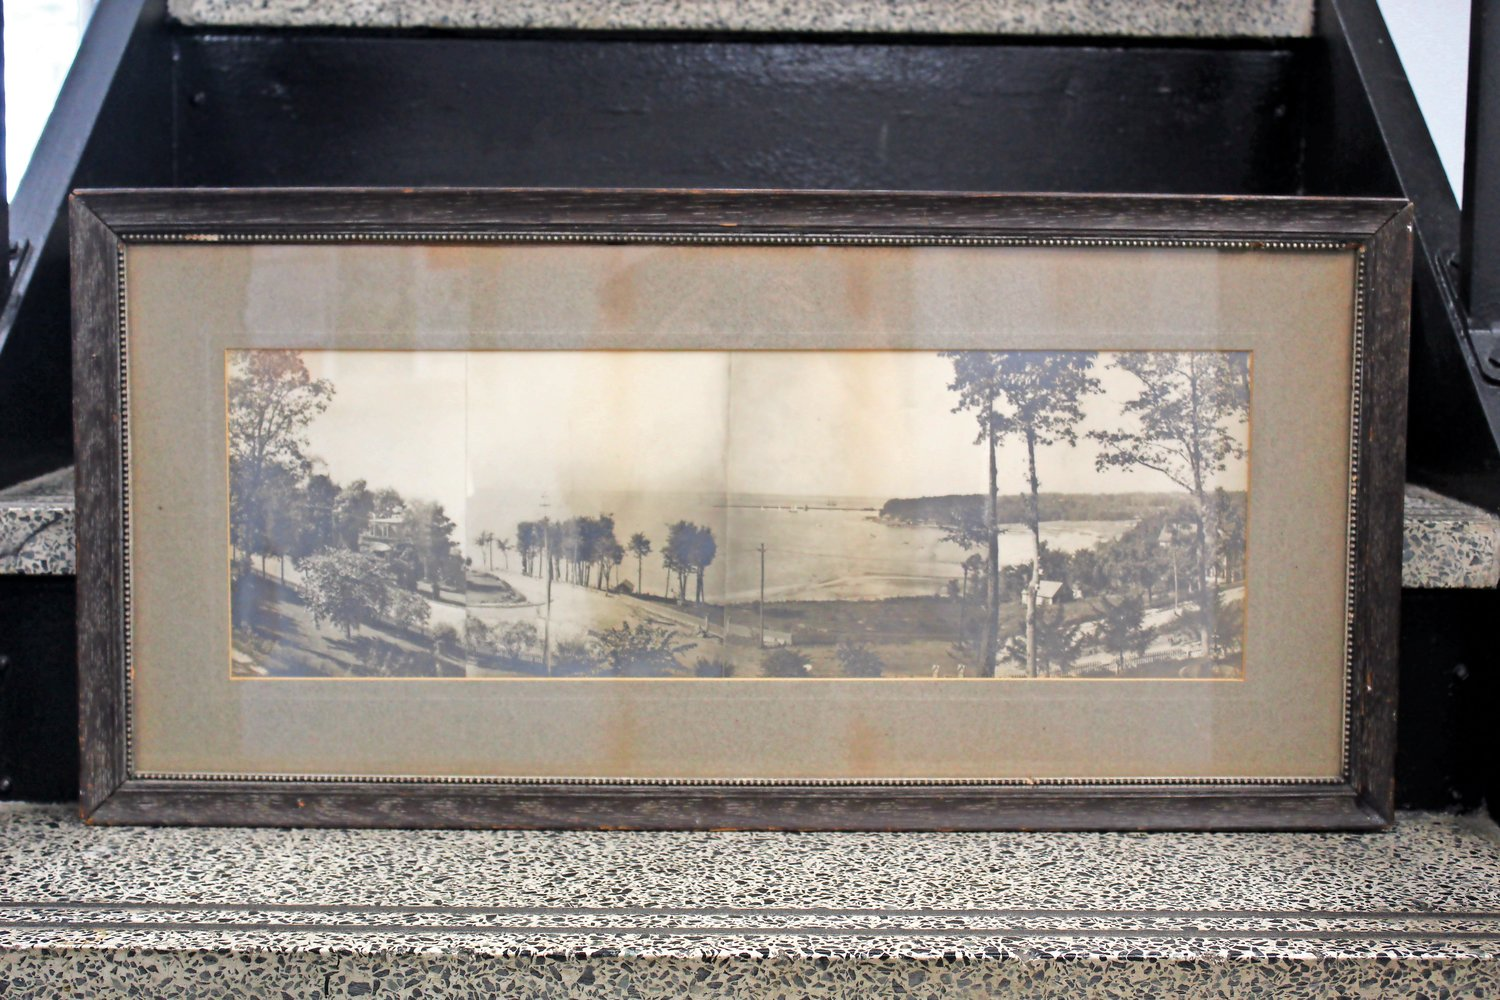 The mural is based on a composite photograph from 1905, which many believe was taken from Mayor F.W. Geissenhainer's estate overlooking what is Cliff Way and Hempstead Harbor.